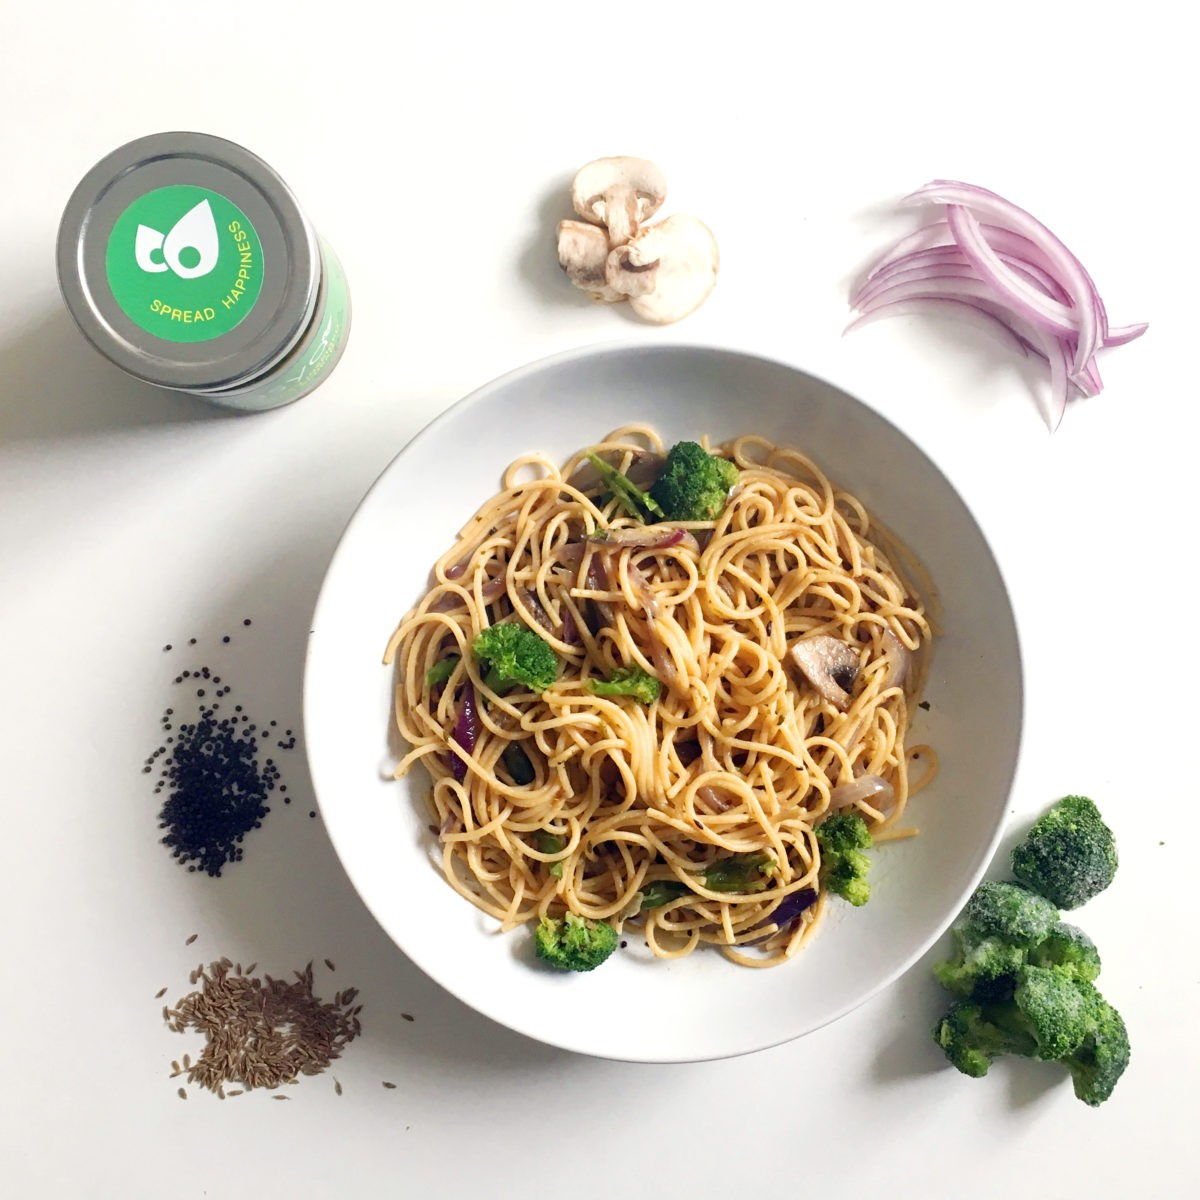 Picture of Pasta-Cilantro-Broccoli-Mushroom-Sasya with ingredients